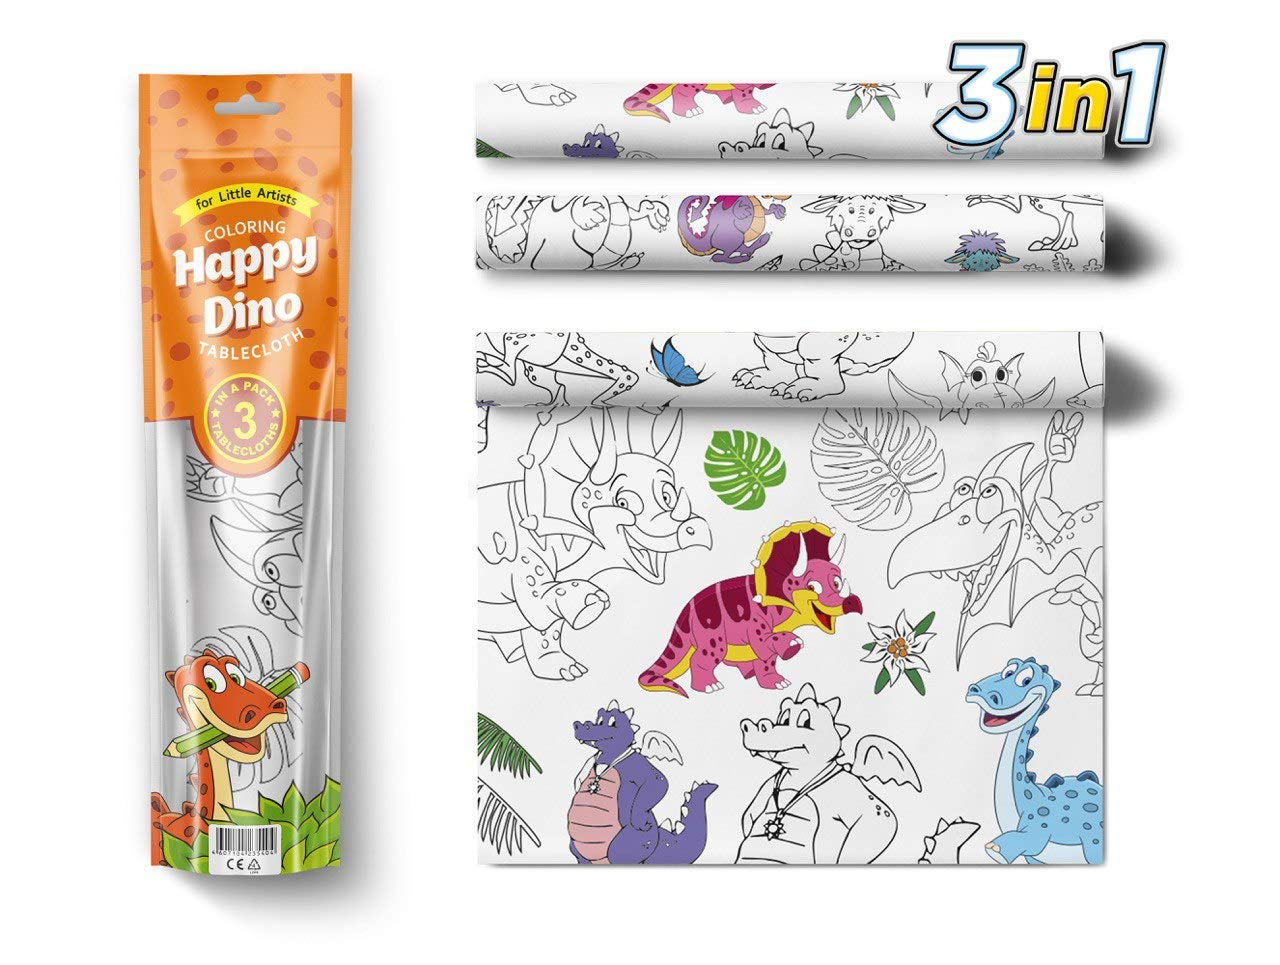 3 in 1 Large Coloring Tablecloth Water Resistant Poster for Kids and Toddlers Colorable Frame «Happy Dino» Fun Painting Activity for Party and Decor Paper Table Doodle Board by PolimerUnion